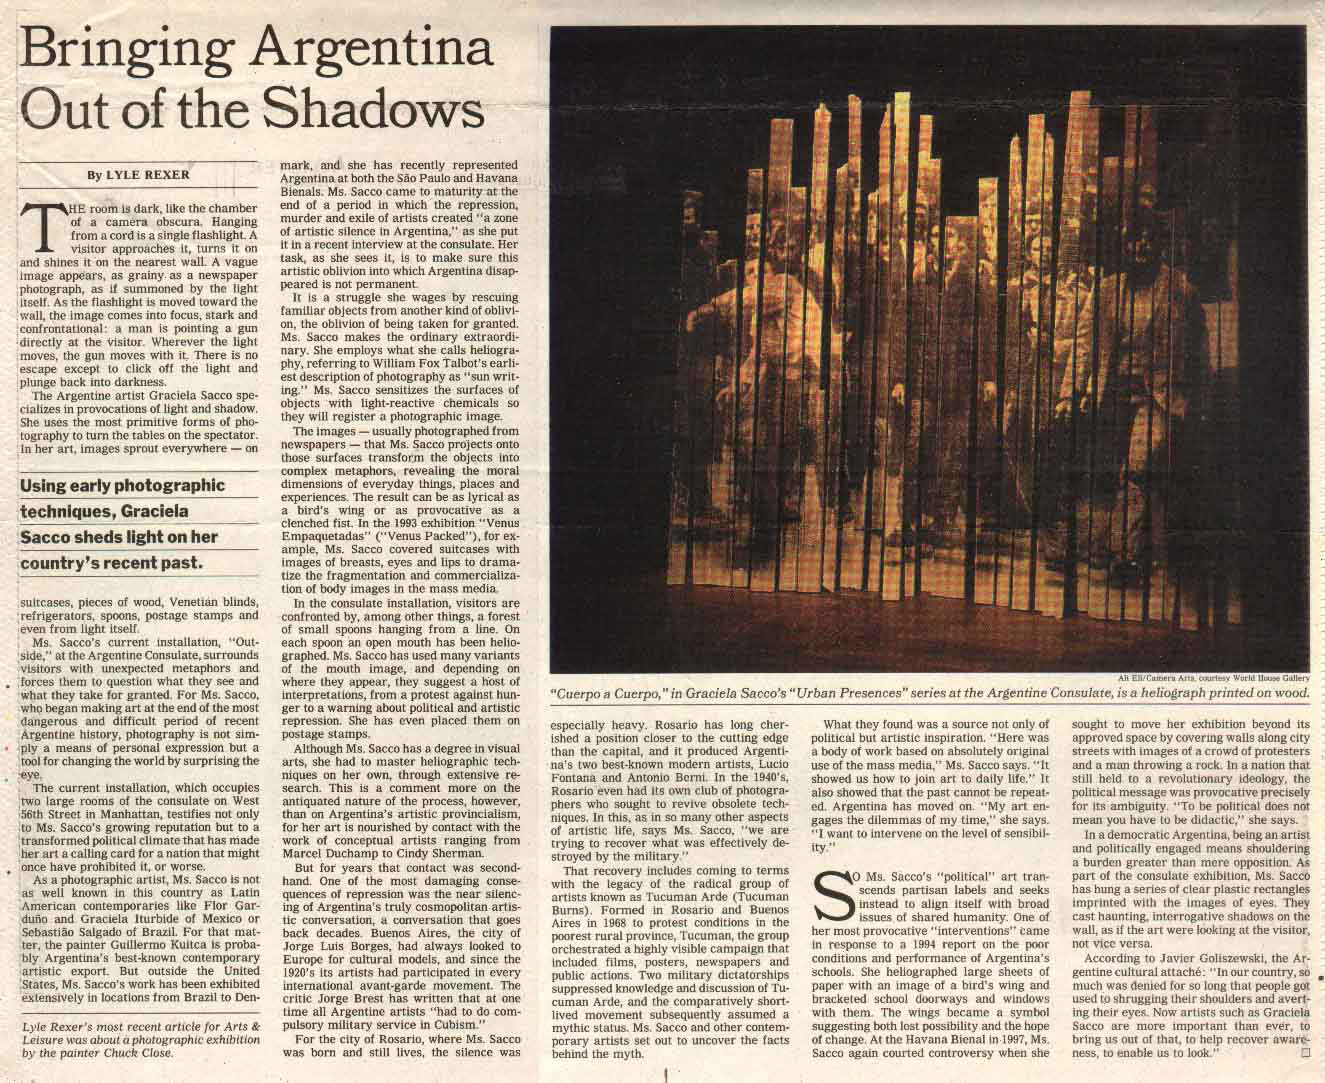 Bringing Argentina out of the shadows